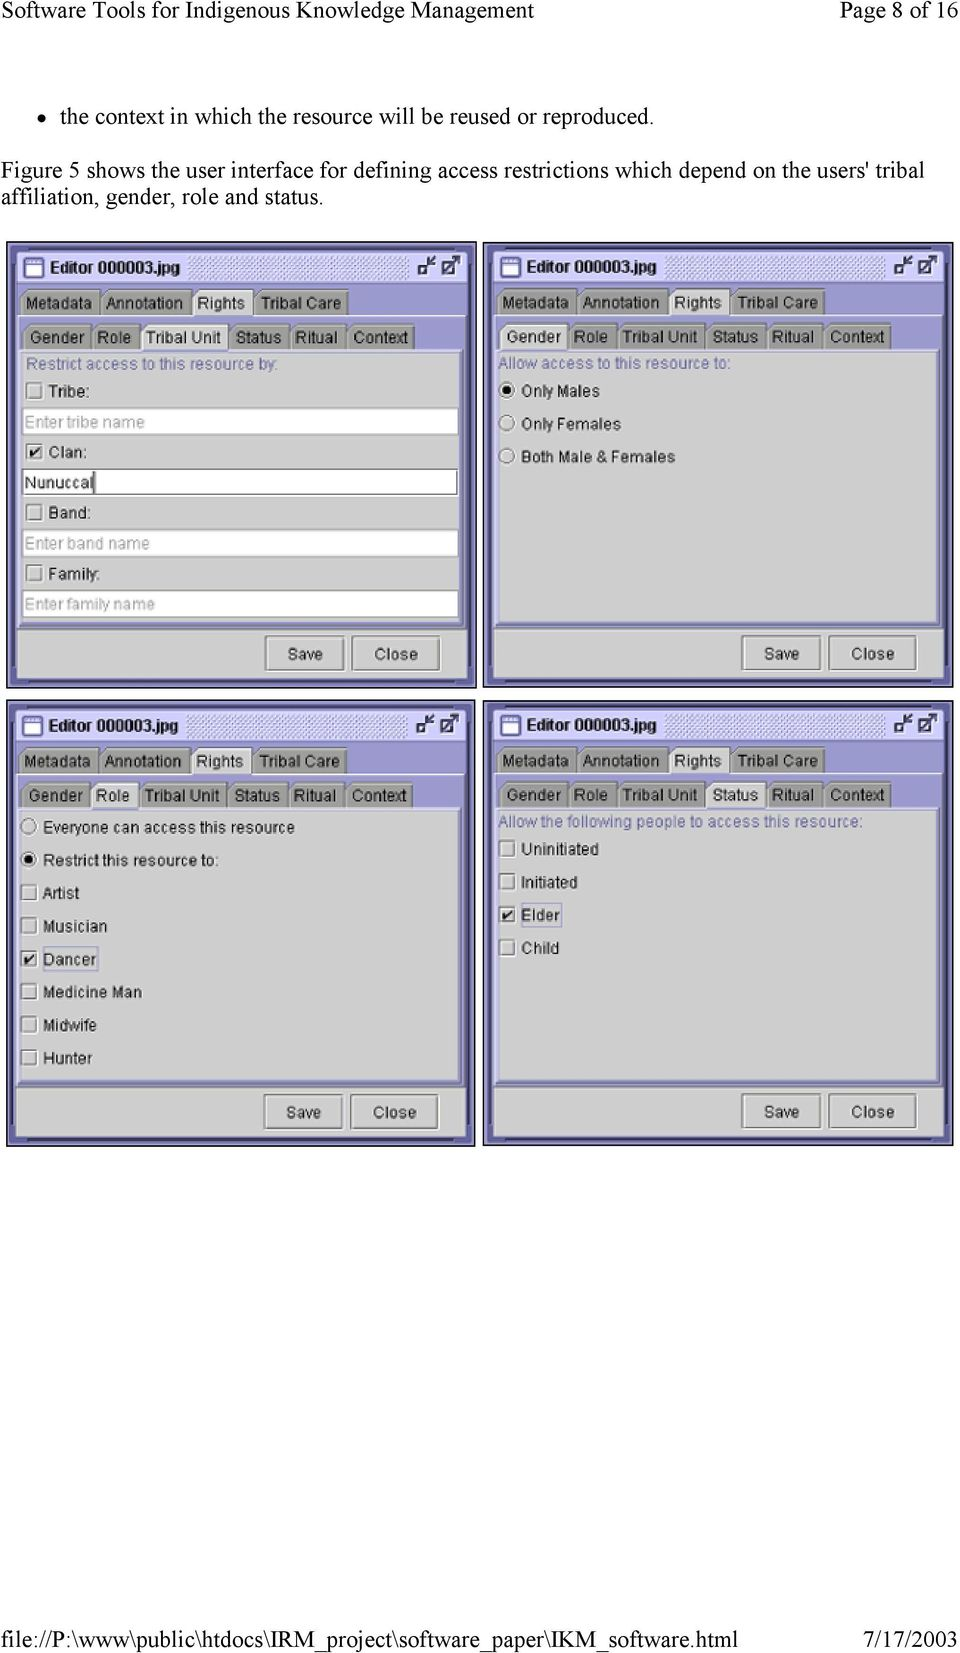 Figure 5 shows the user interface for defining access